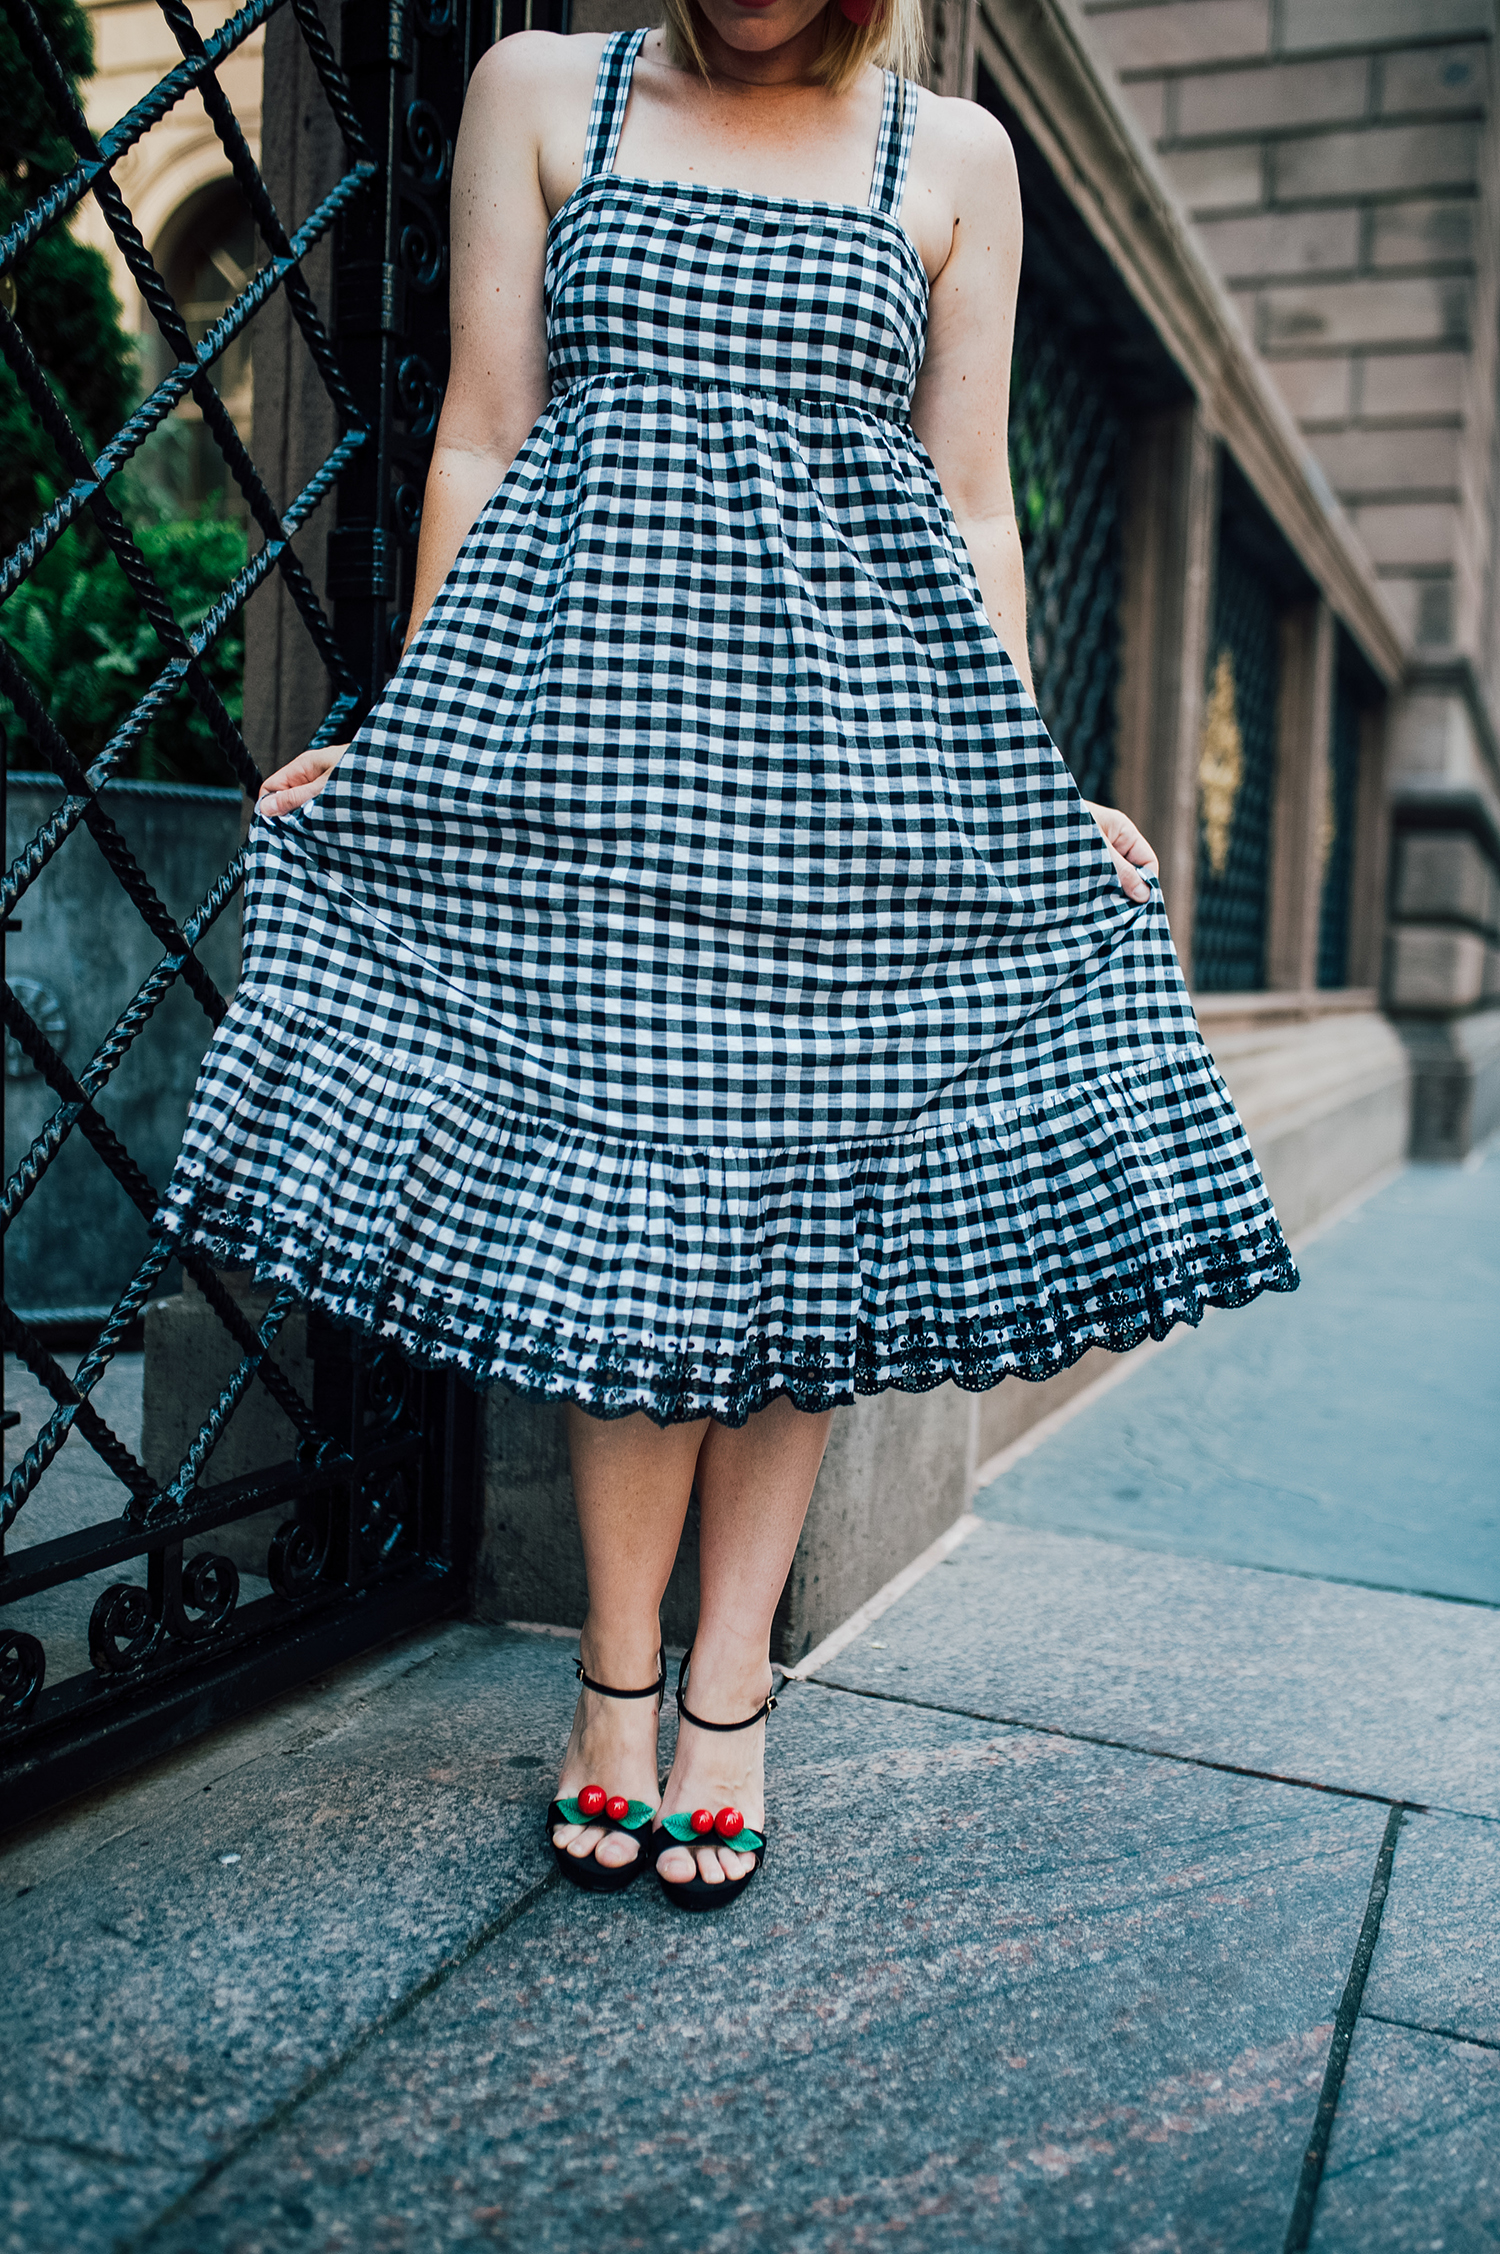 Are you obsessed with gingham? This gingham dress is super flattering and totally on trend!